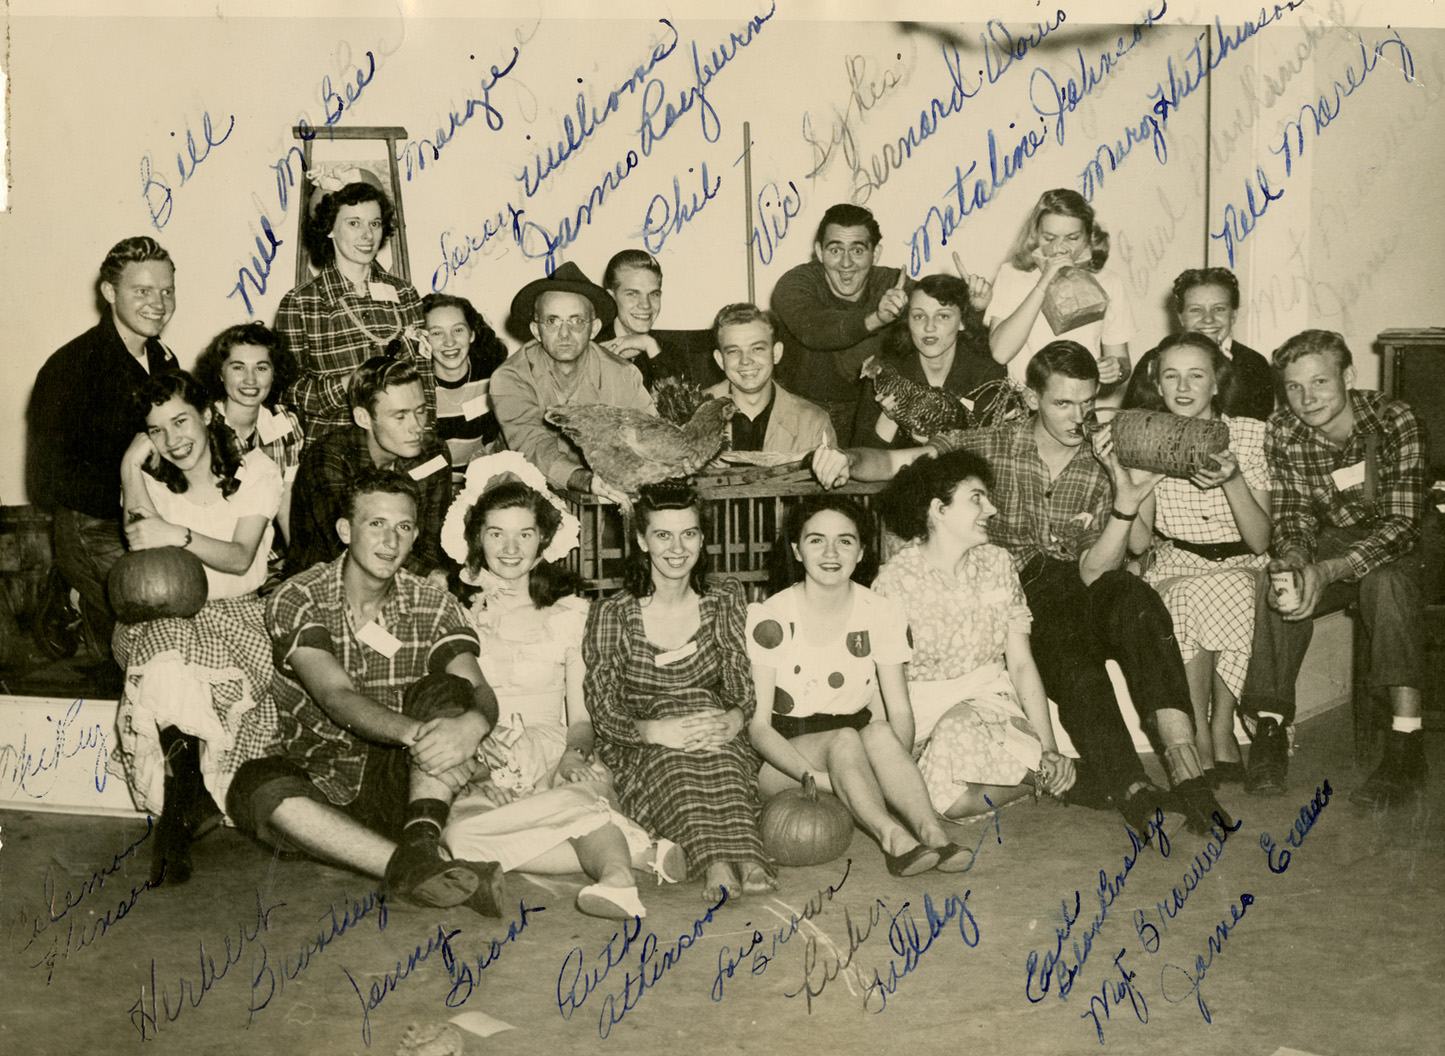 Costumed participants (and a chicken!) from the 1949 Watauga County Centennial posed for this image by local photographer Palmer Blair. Mickey McGuire is at far left with a pumpkin on her knee. Image courtesy of the Digital Watauga Project, Von and Mickey Hagaman Collection (Von-Hag-1-020).